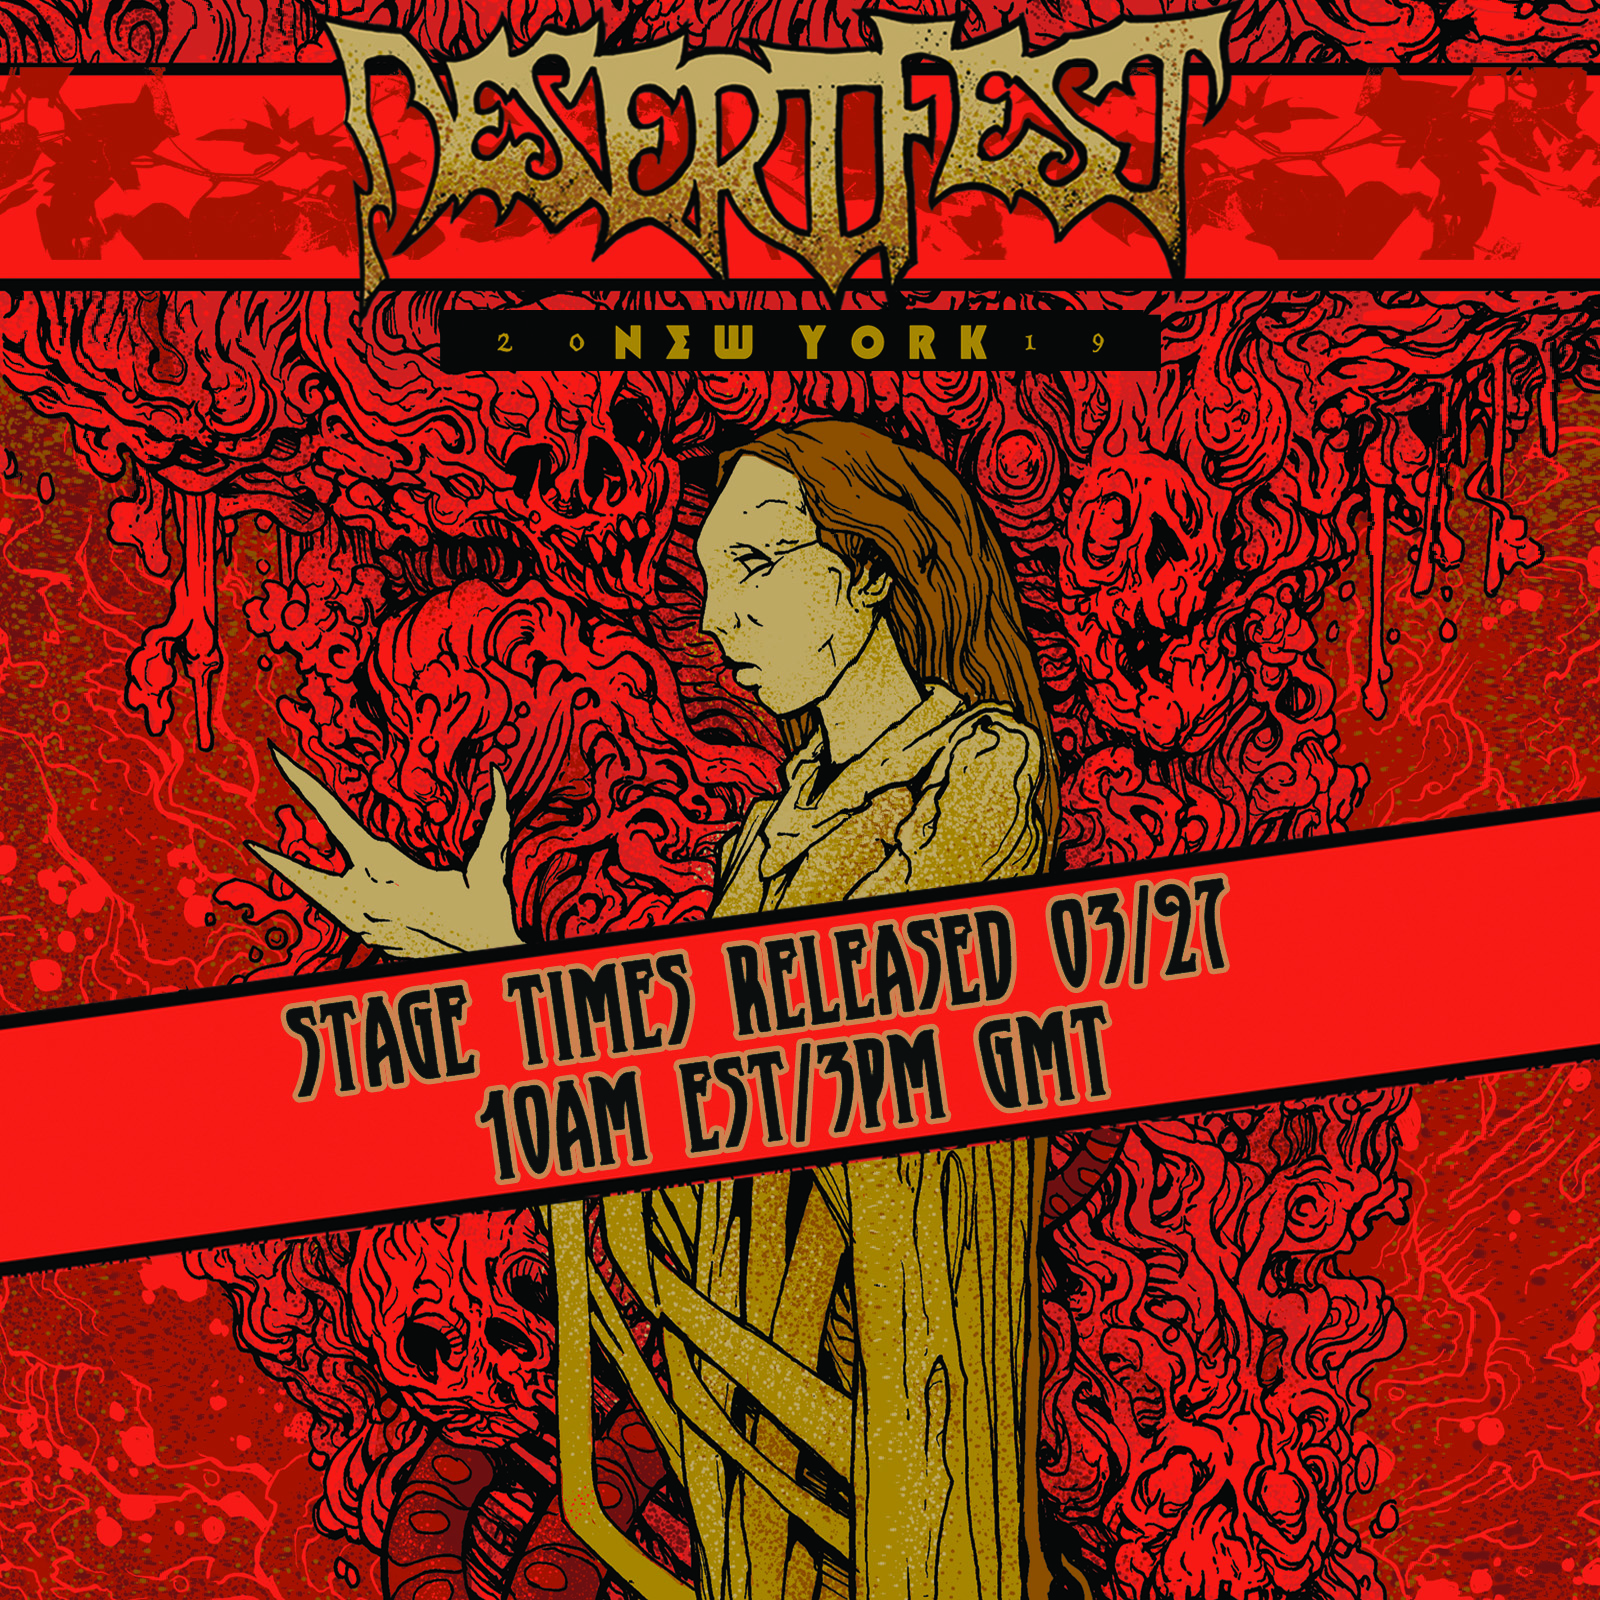 STAGE TIMES FOR SAINT VITUS + THE WELL RELEASED MARCH 27TH!